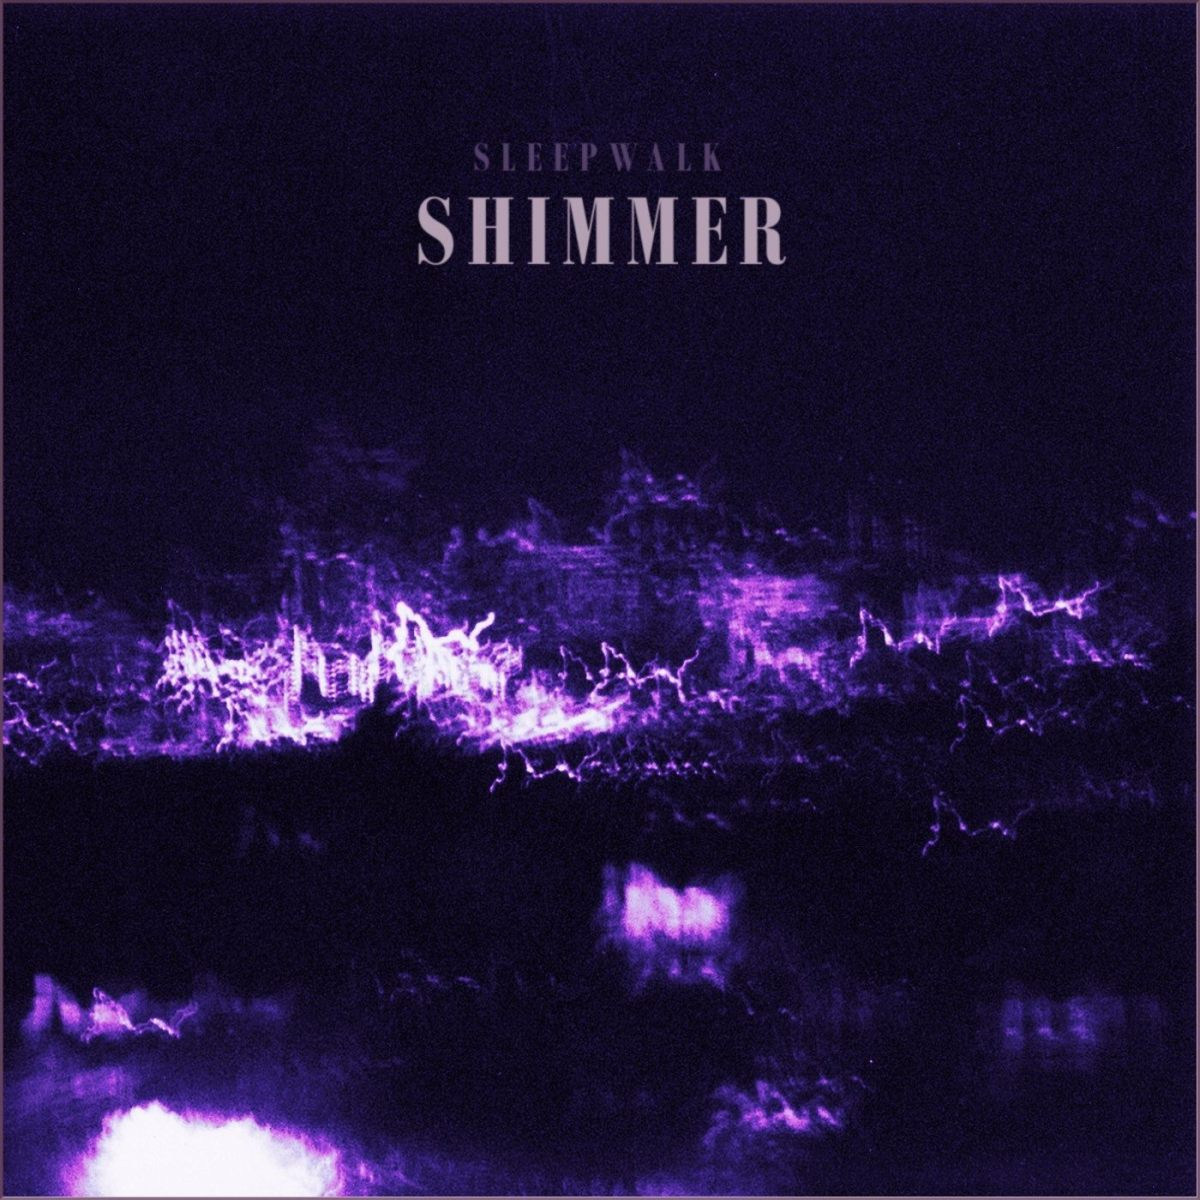 Shoegaze revivalists, Sleepwalk, hit the ground running with debut LP, Shimmer